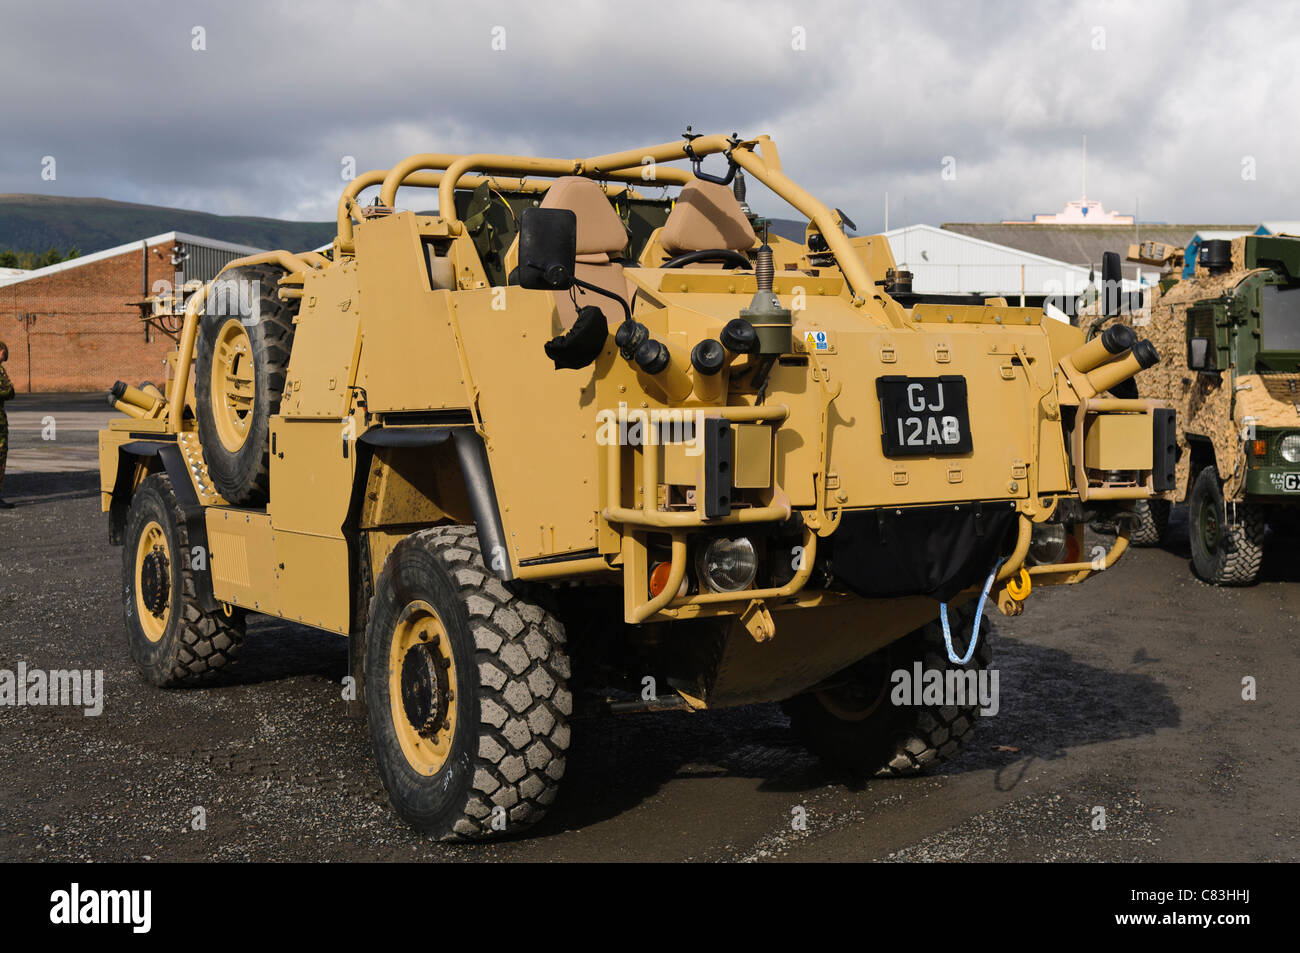 British Army M-Wmik (Mobility Weapons Mounted Installation Kit) as used in Afghanistan - Stock Image